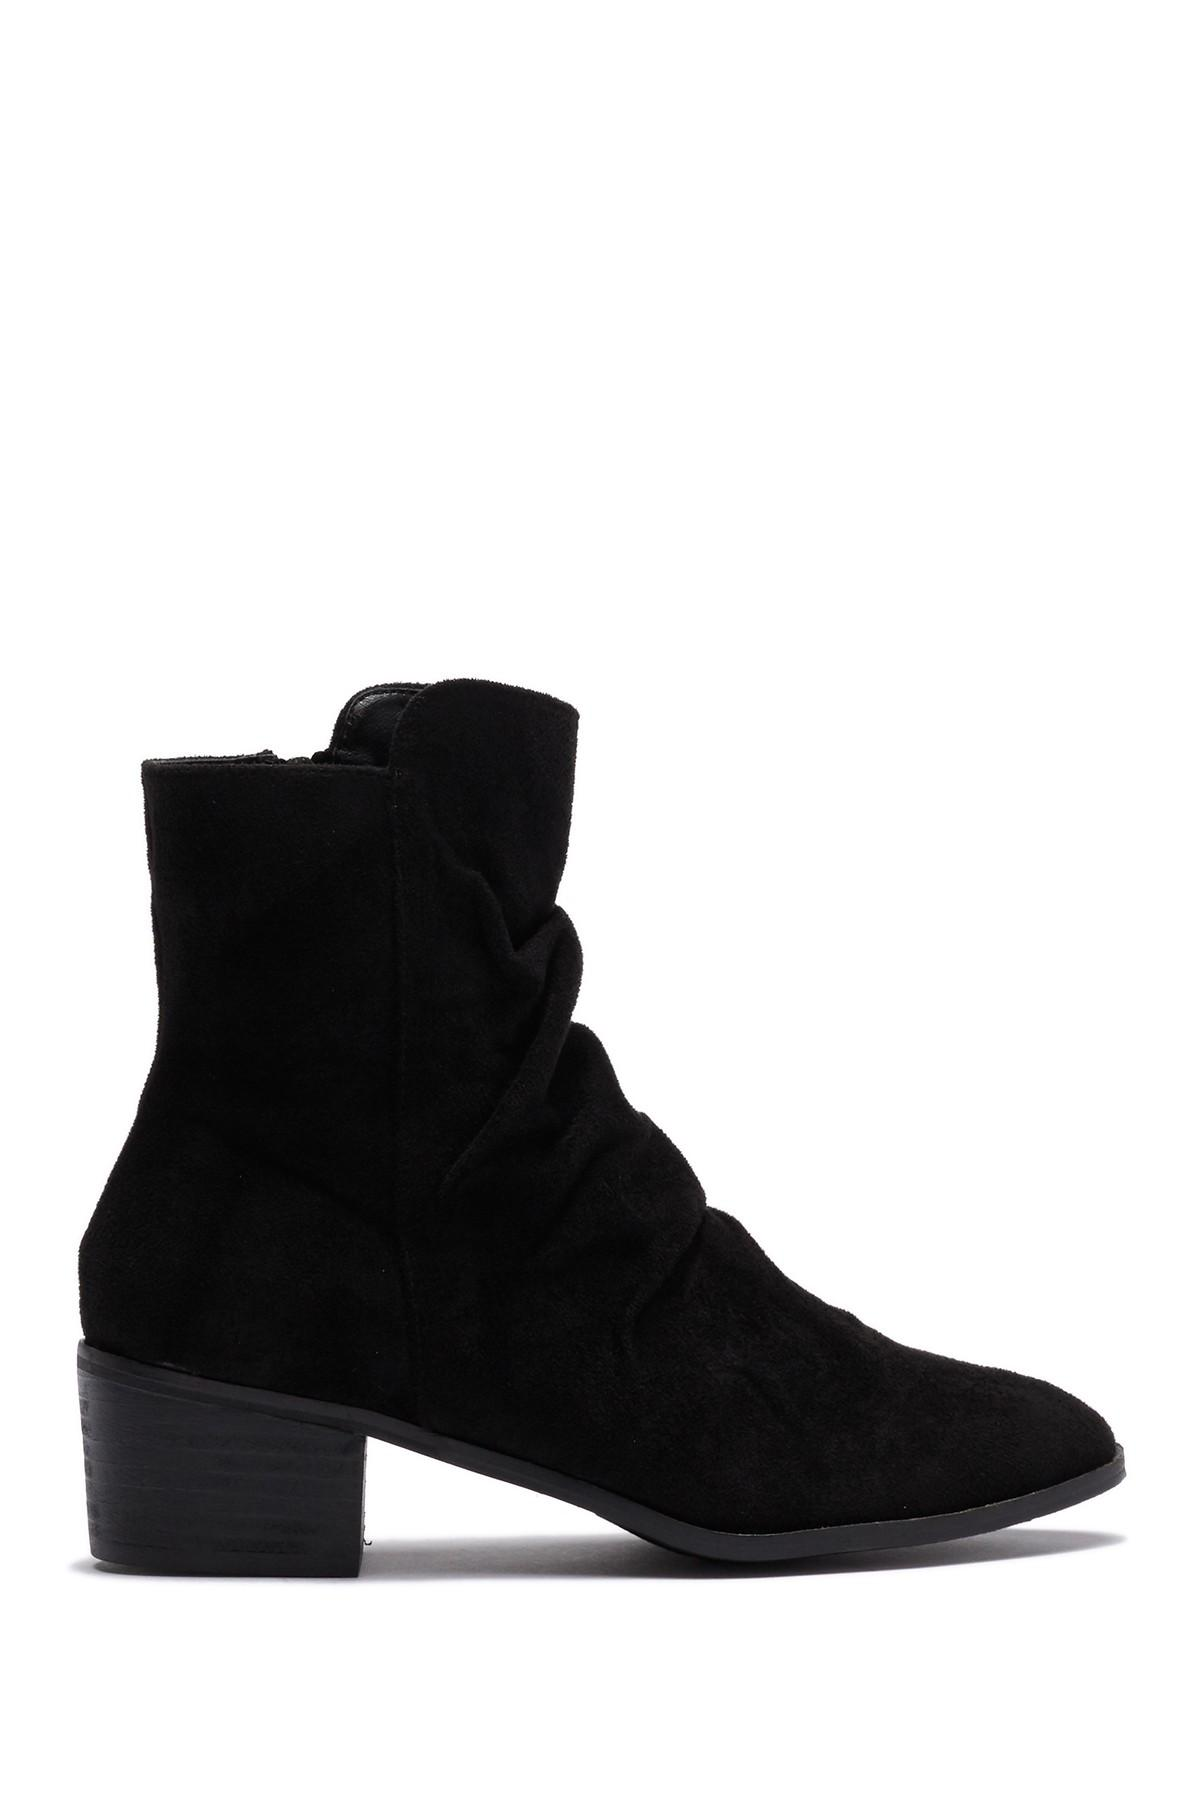 36c84244b1a6 Lyst - Catherine Malandrino Frances Slouch Ankle Bootie in Black